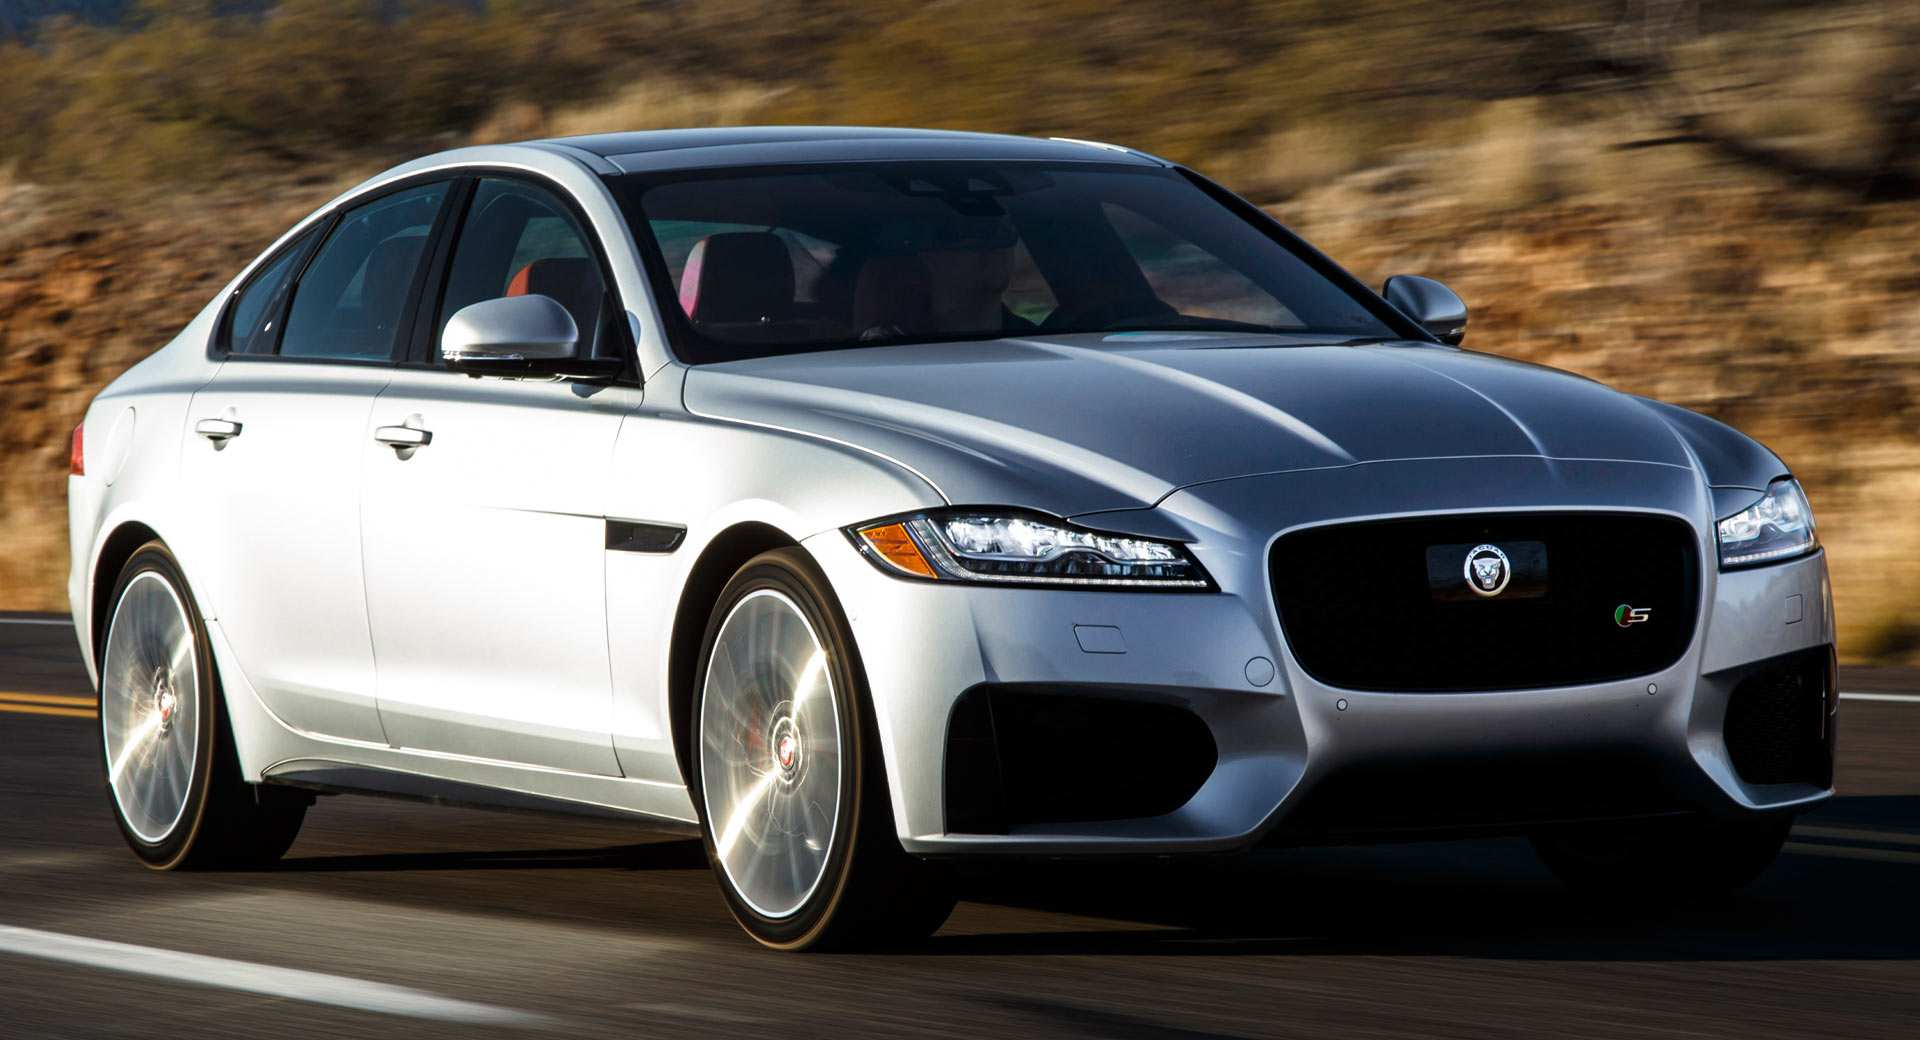 84 All New New Jaguar Xf 2020 Exterior and Interior with New Jaguar Xf 2020